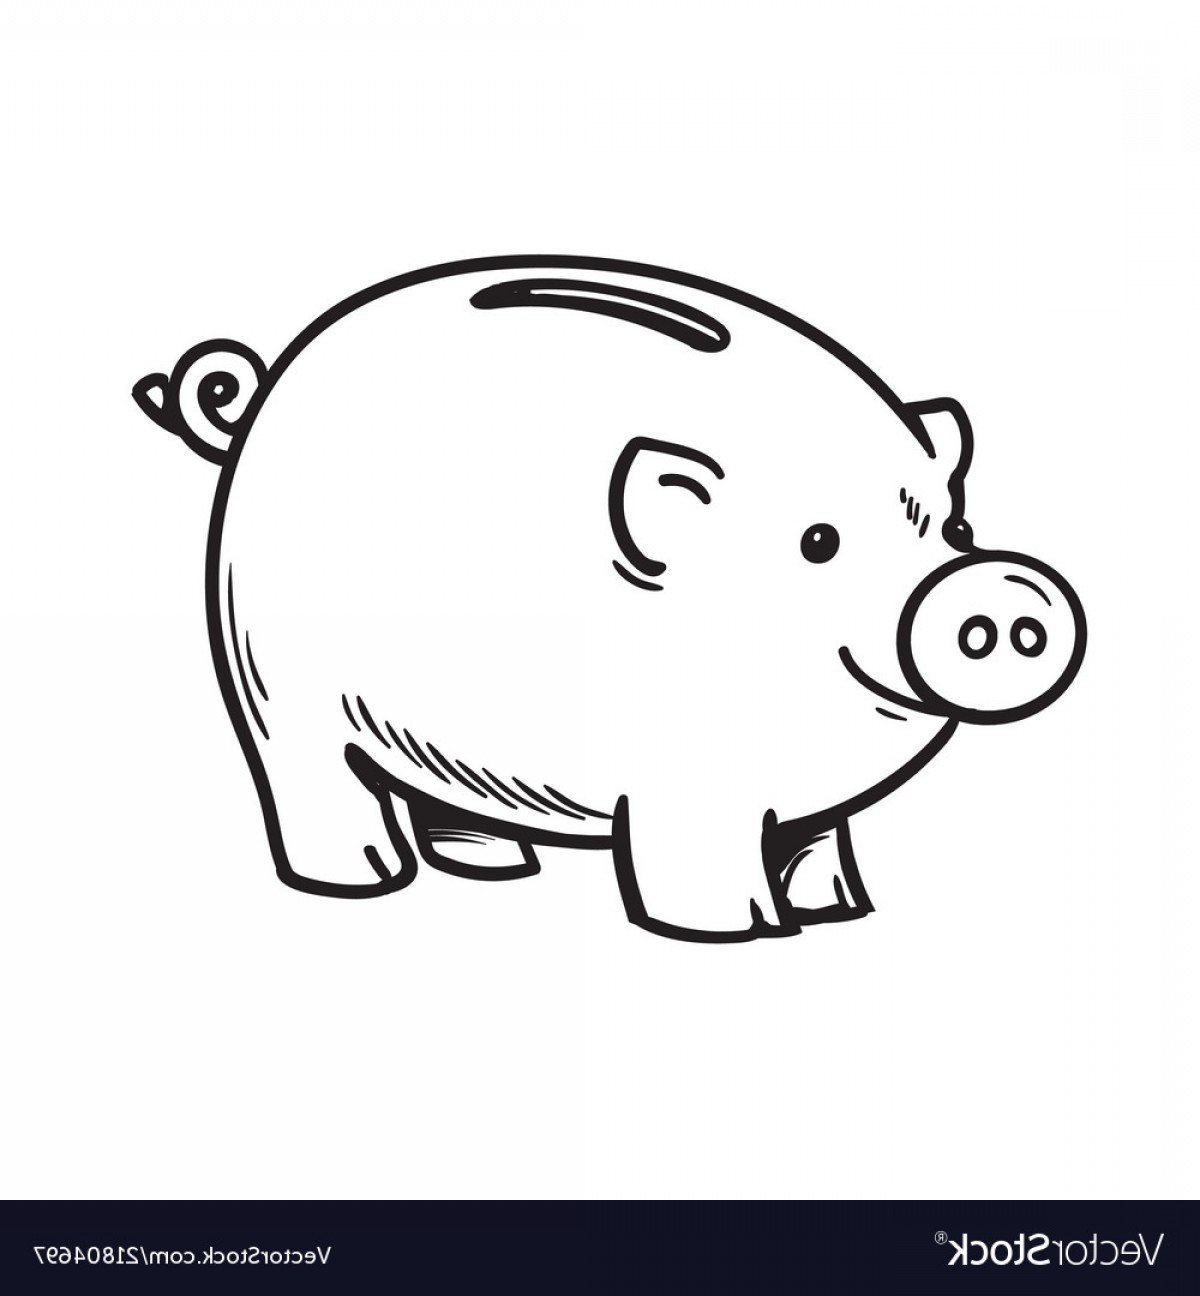 Funny Black And White Vector: Black And White Sketch Of Funny Piggy Bank Vector